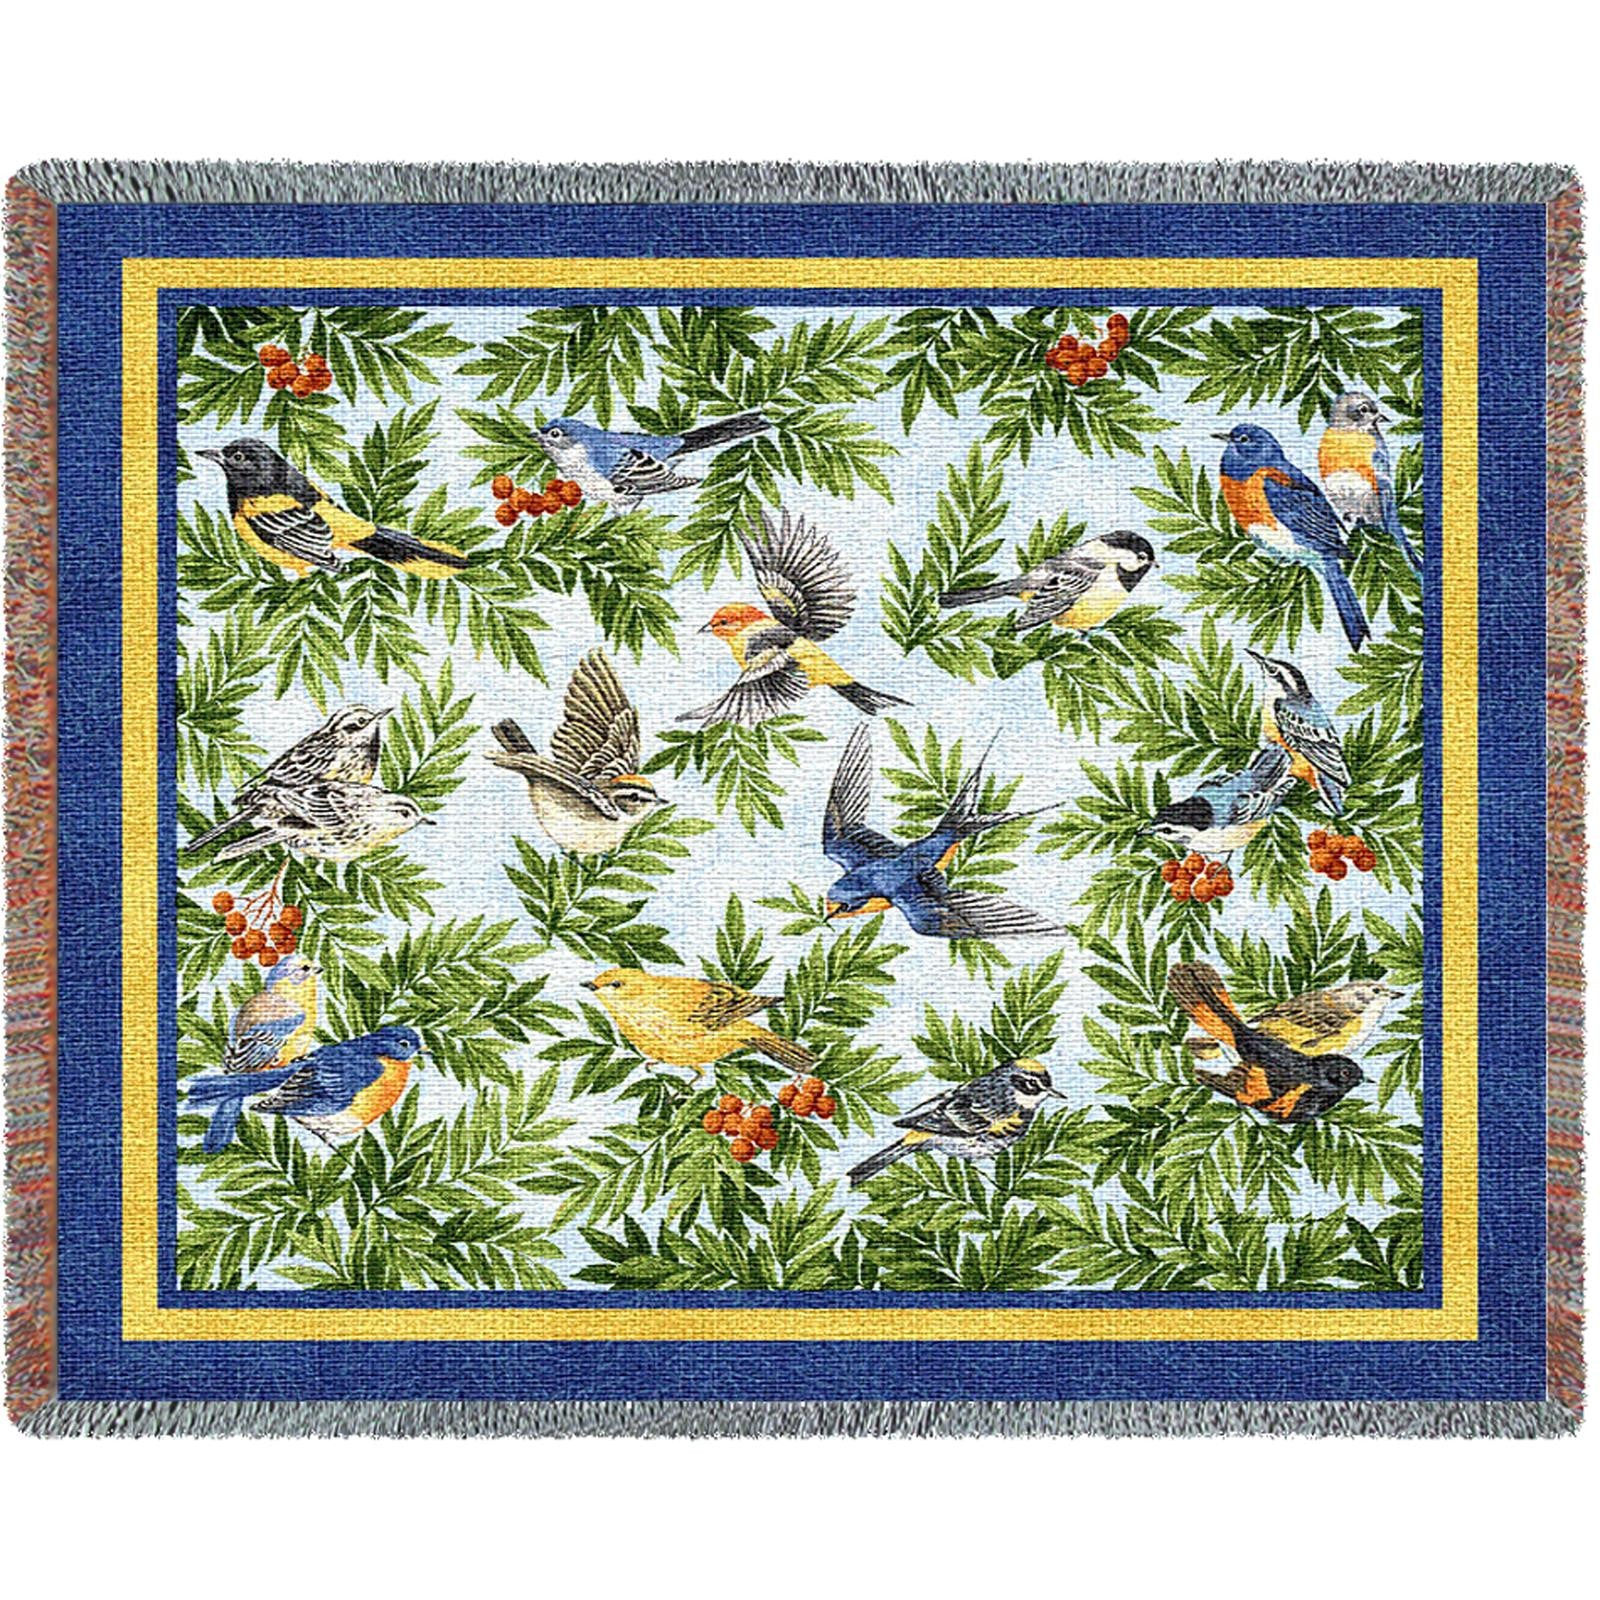 Songbirds (Birds) Tapestry Throw